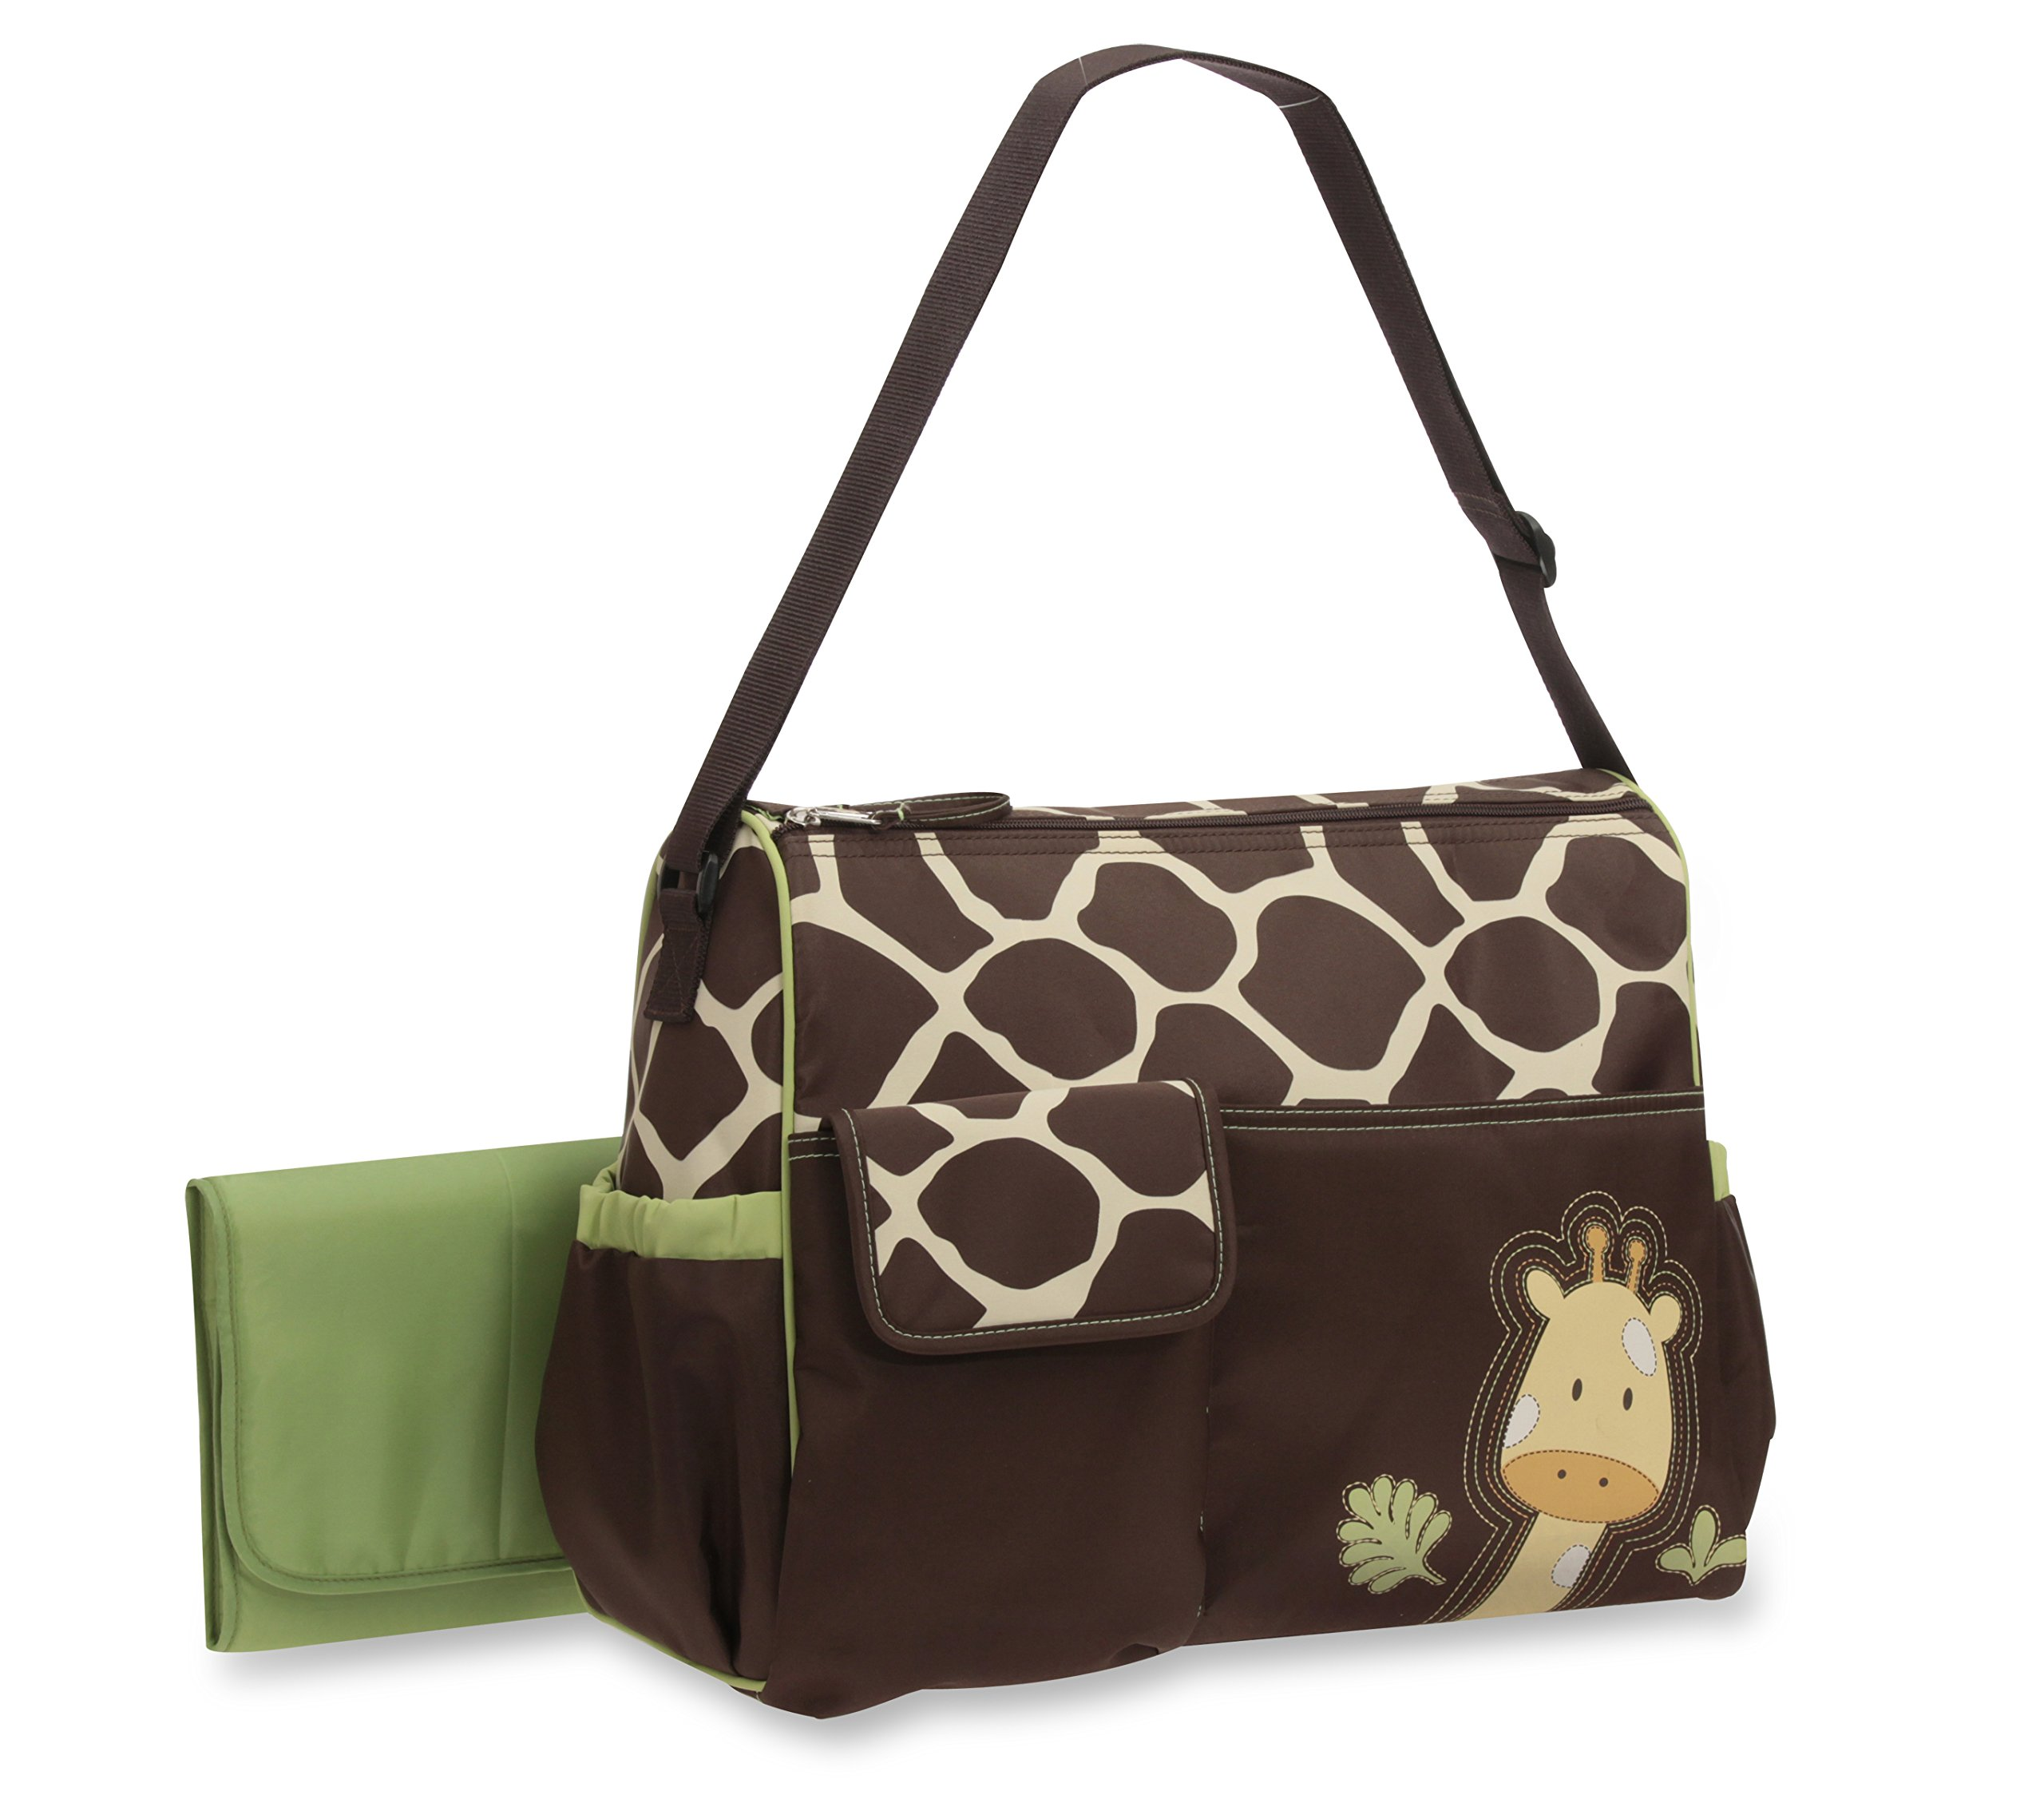 Baby Boom Animal Print Collection - Forest Giraffe Print Diaper Duffel Bag - Large, Roomy Bag, with Wipeable Diaper Changing Pad - Great for Overnights by Baby Boom